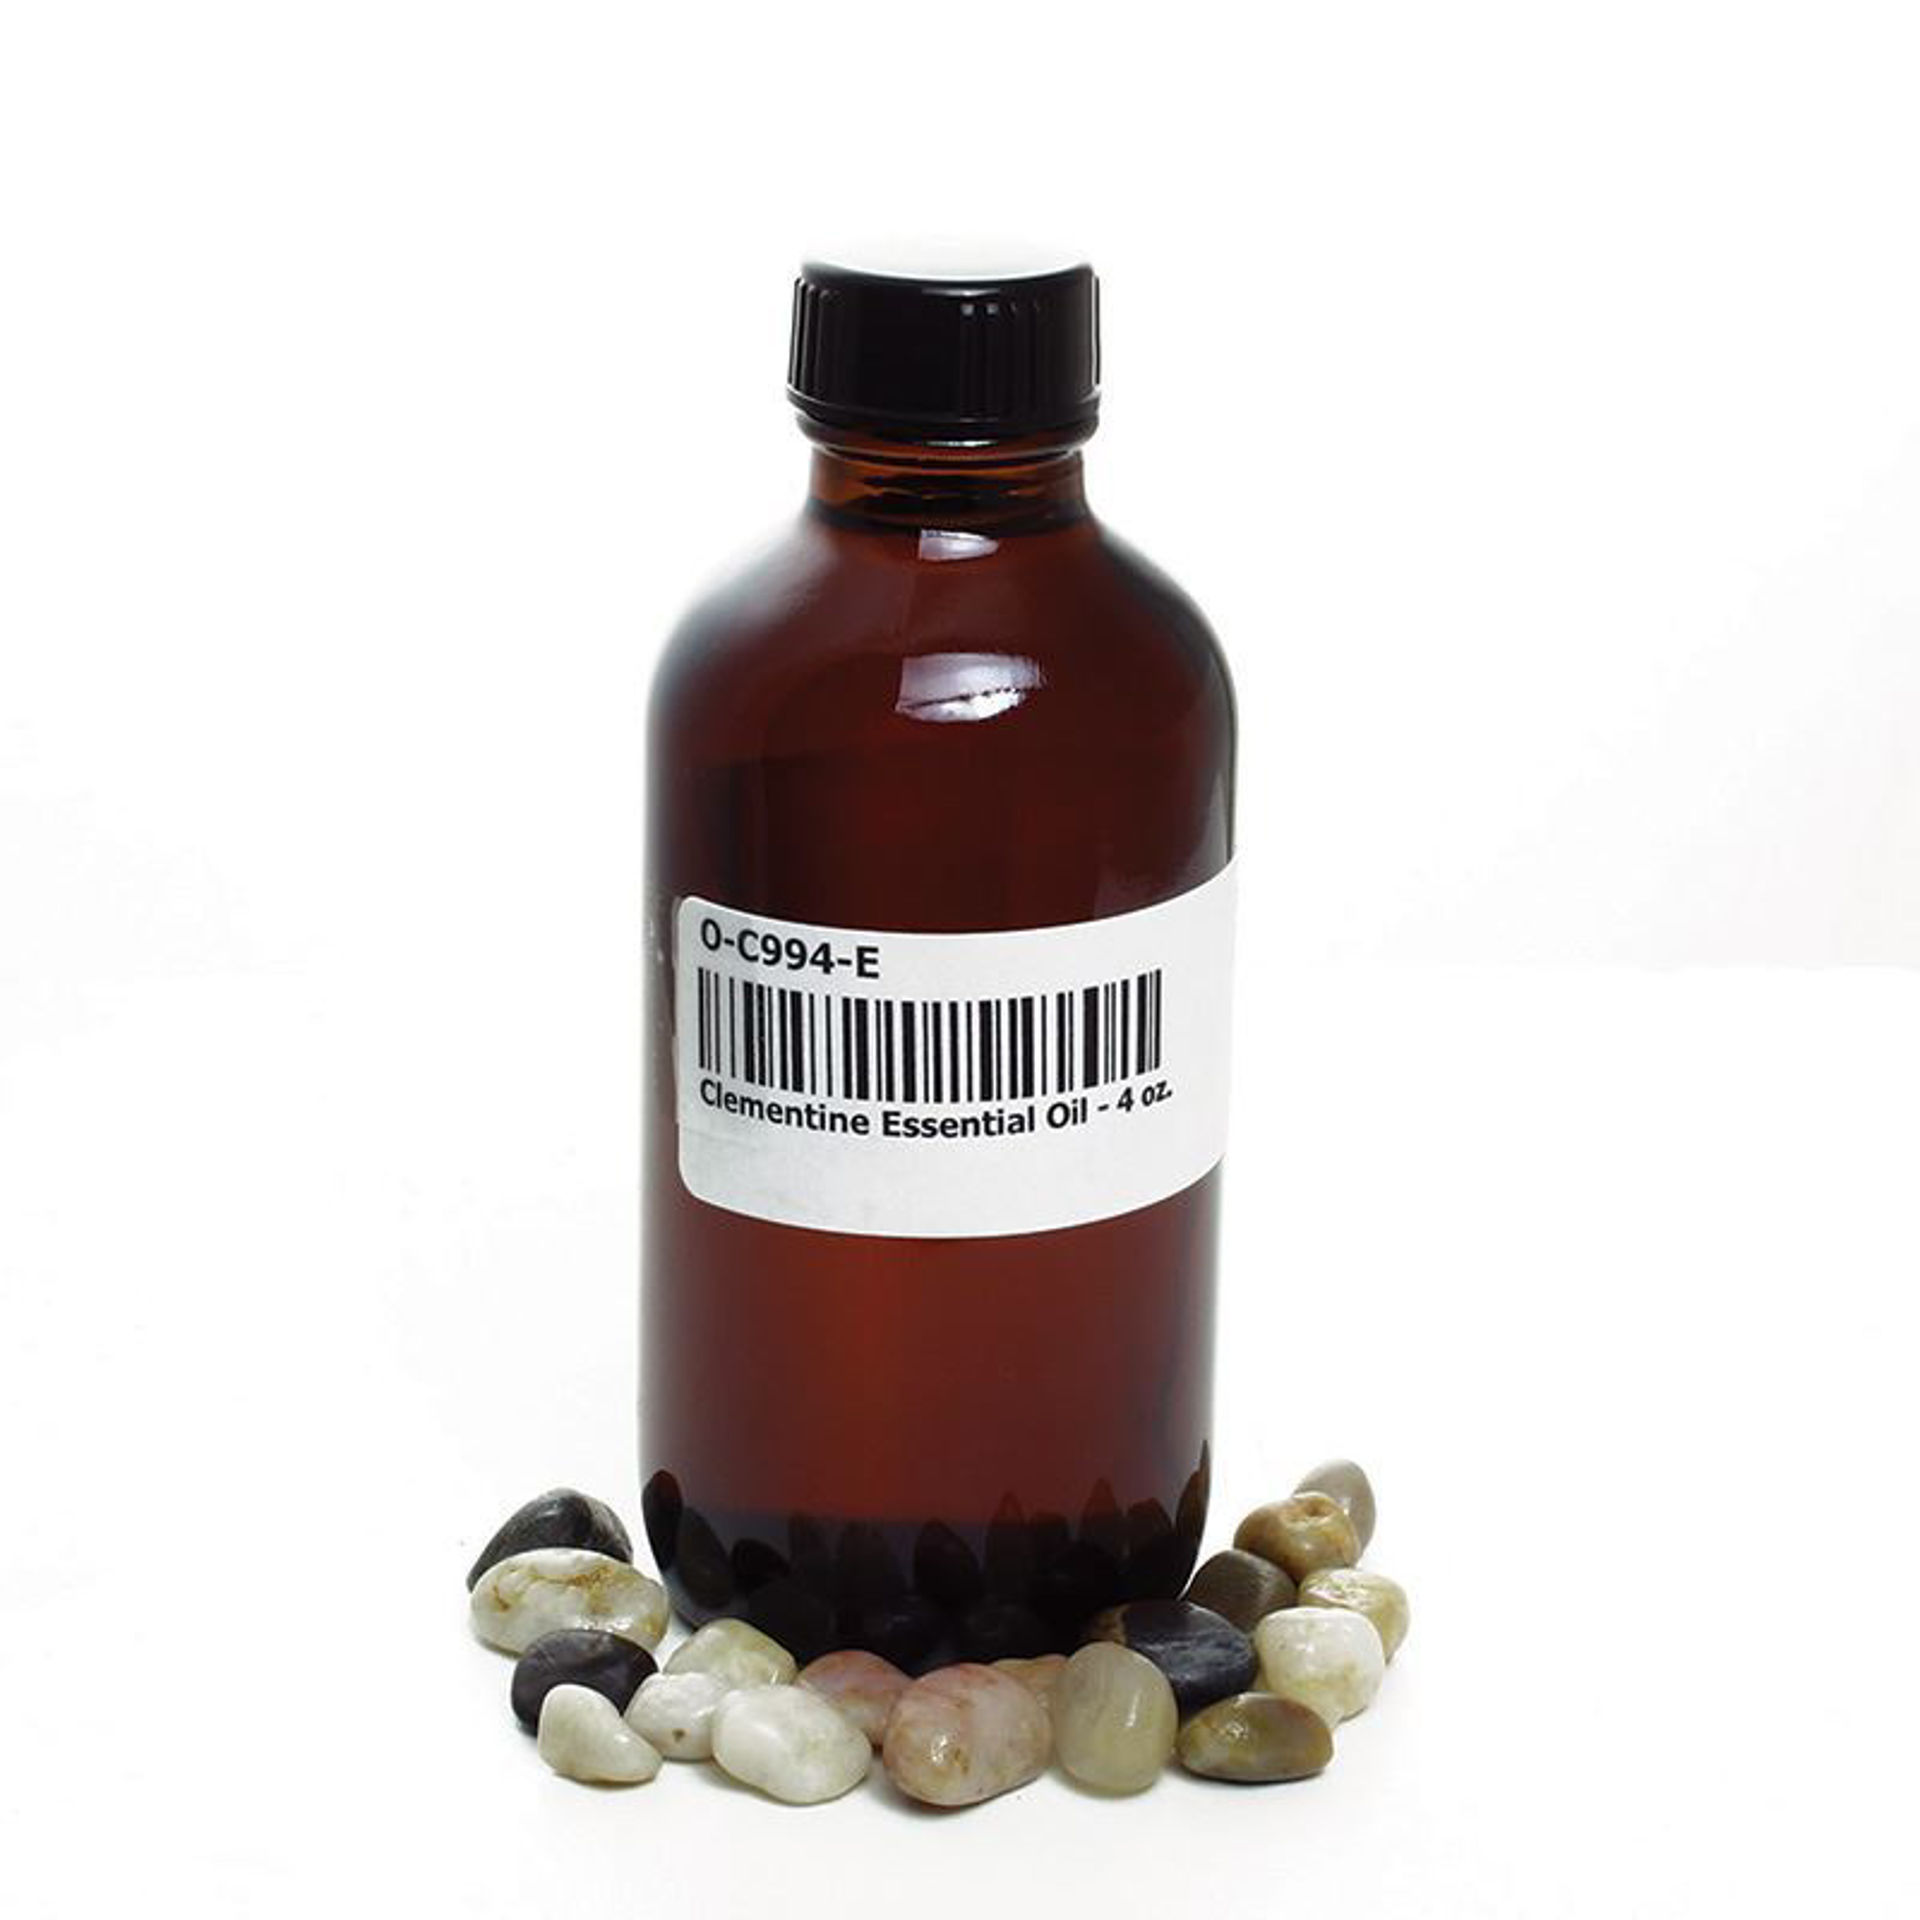 Picture of Clementine Essential Oil - 1 oz.